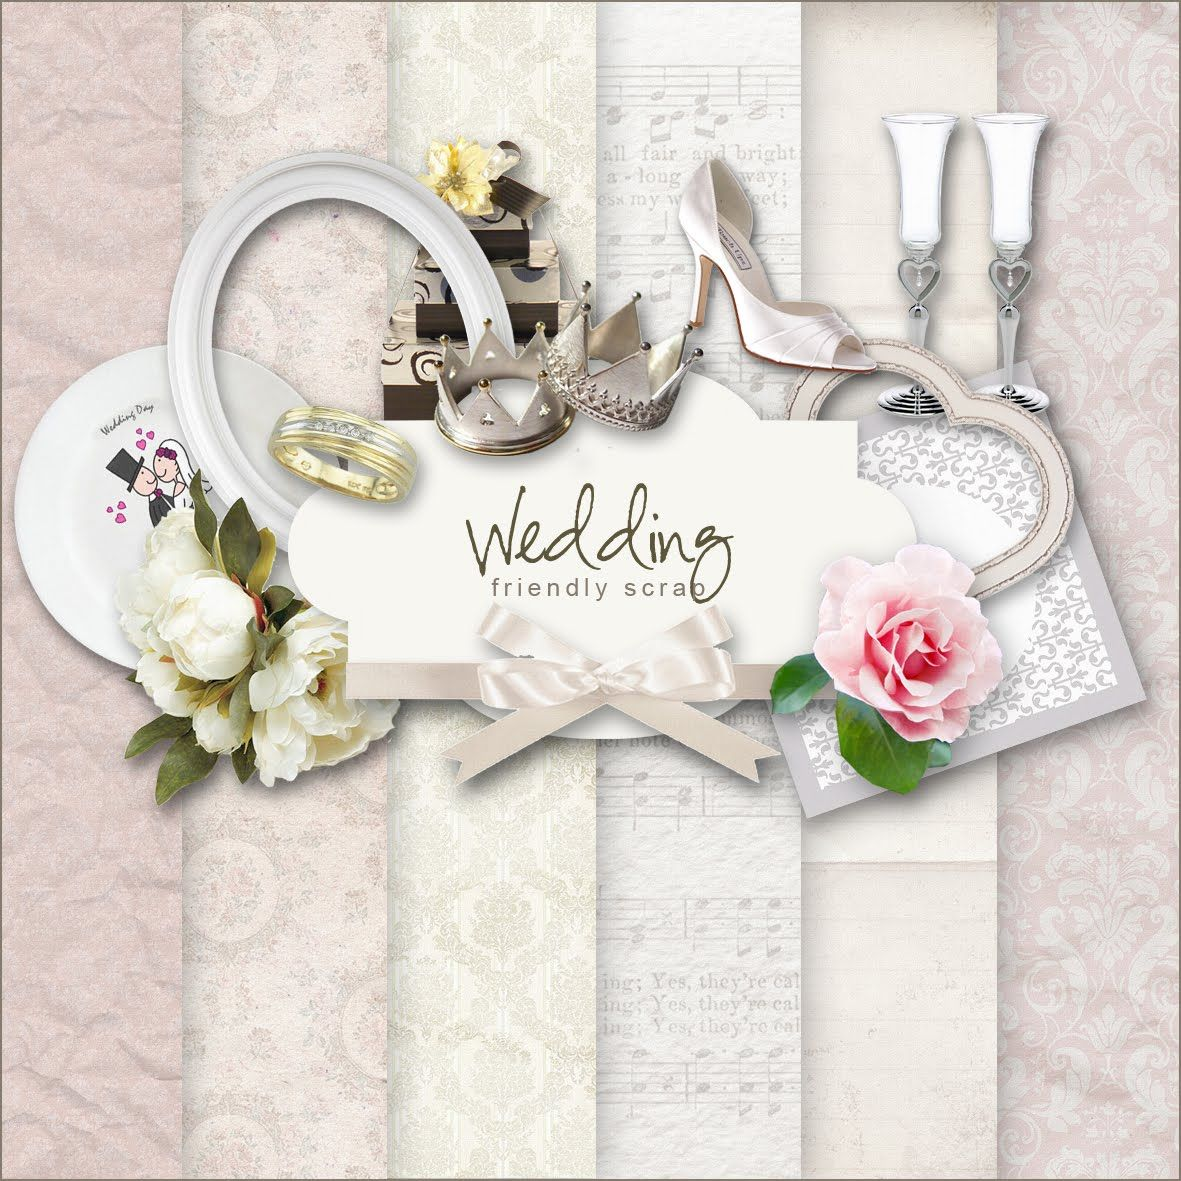 Free Wedding Scrap paper | Wedding freebies, Wedding ...